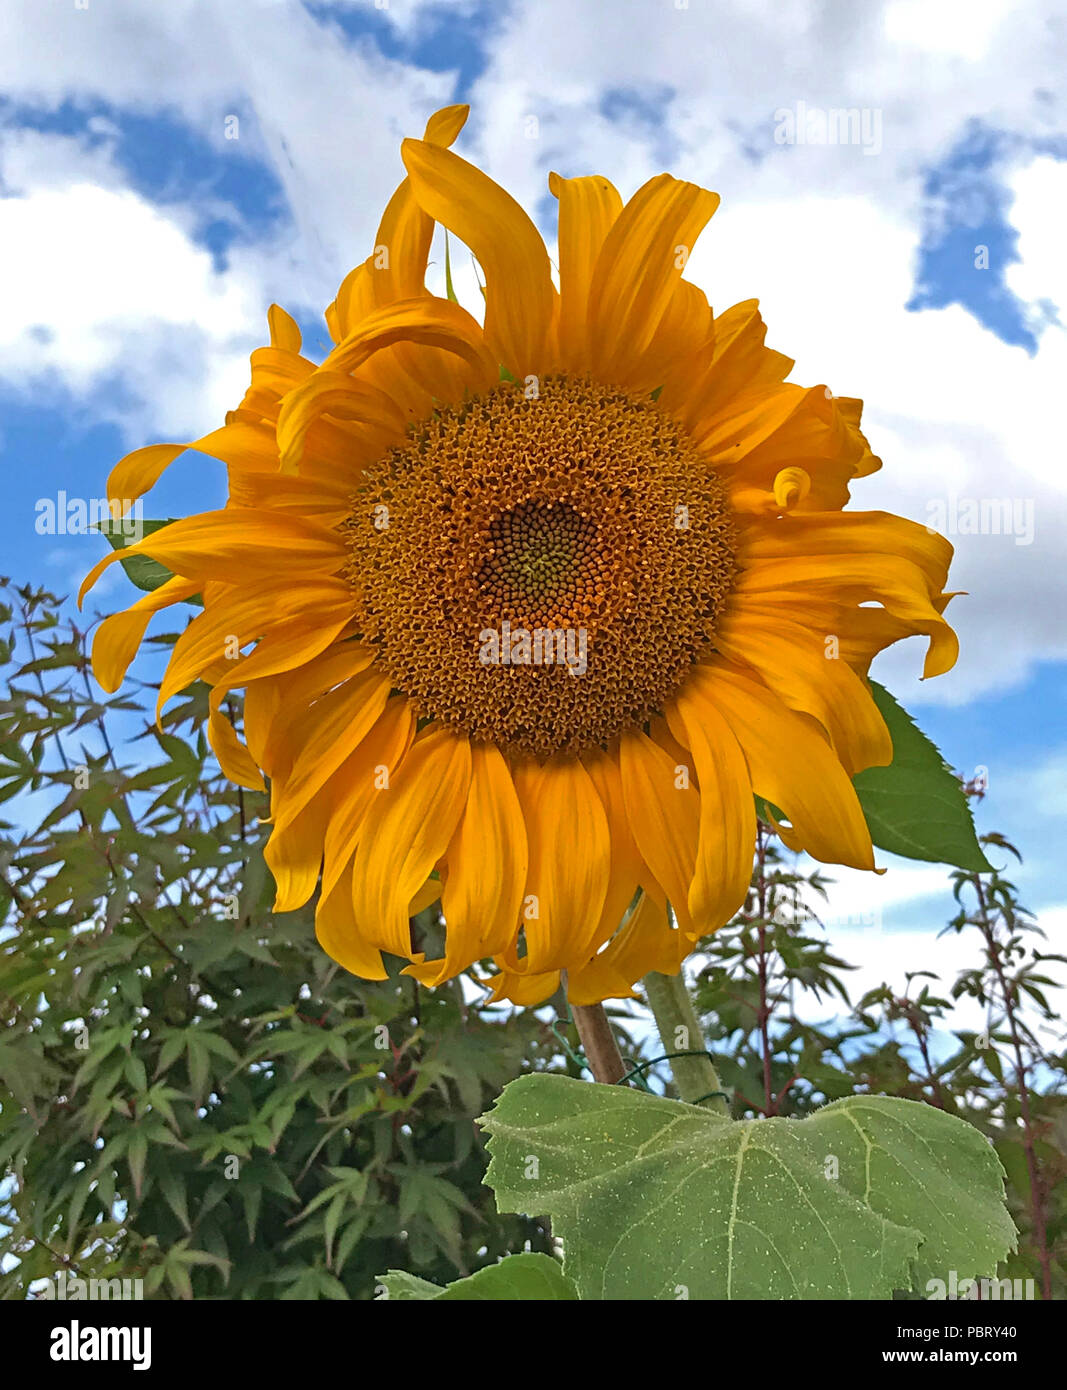 Sunflower, Helianthus, orange - yellow against a blue sky with clouds - Stock Image